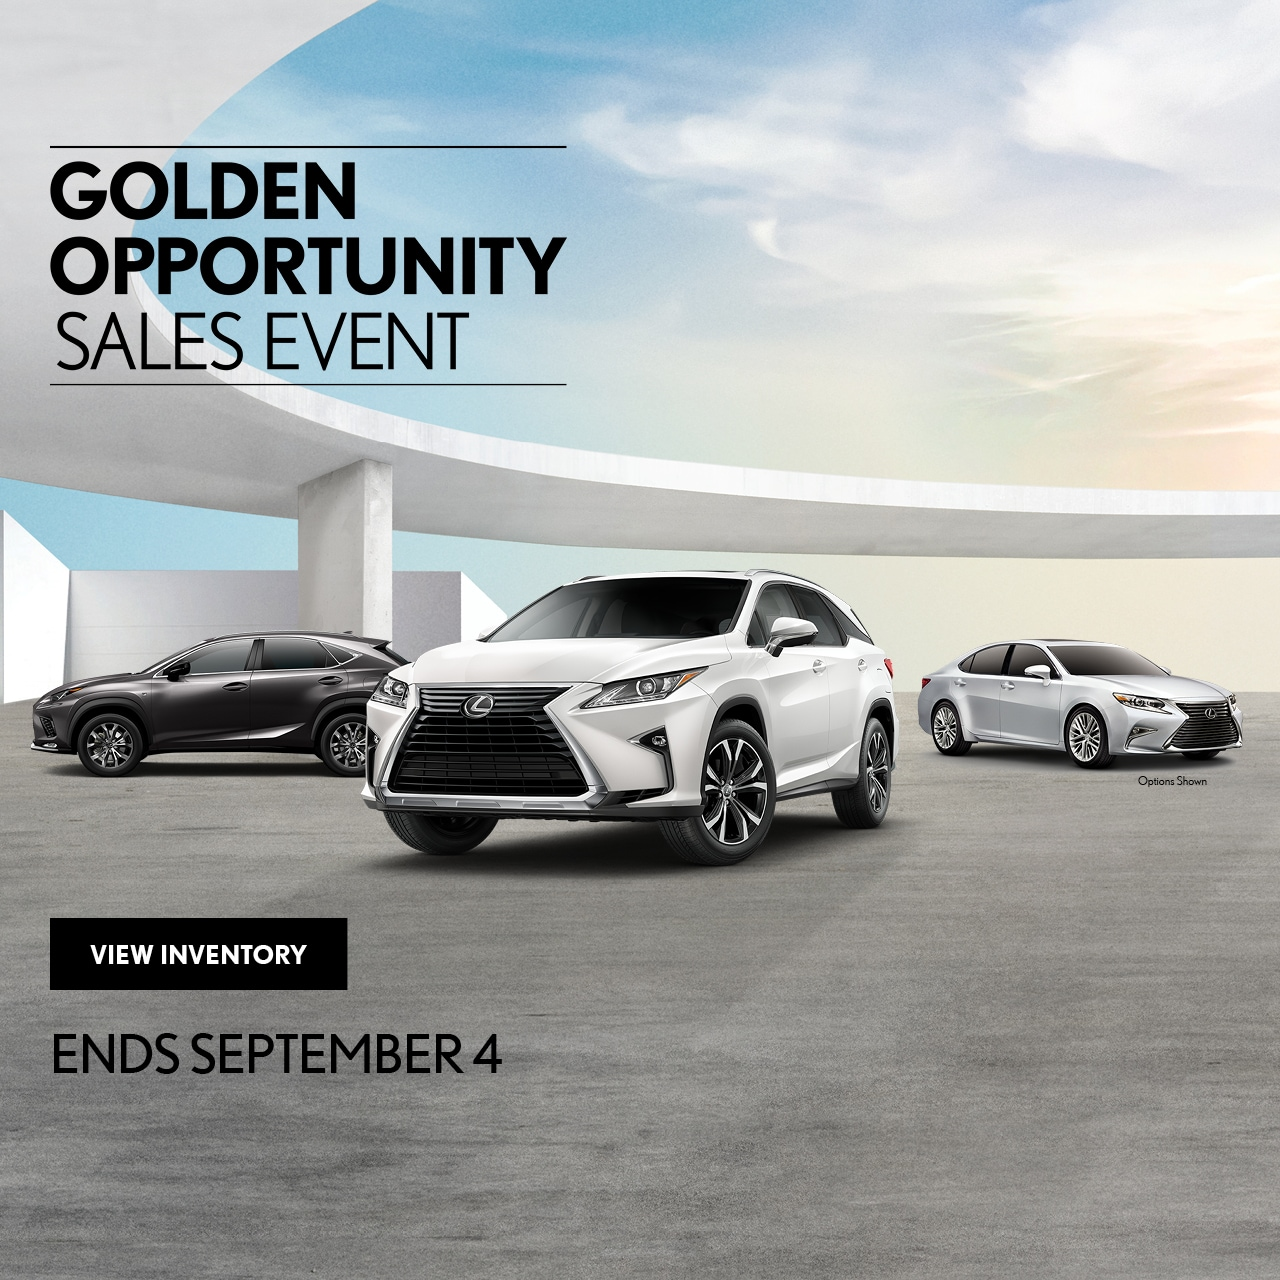 Lexus Deal: New Lexus And Used Car Dealer In Rockford, IL